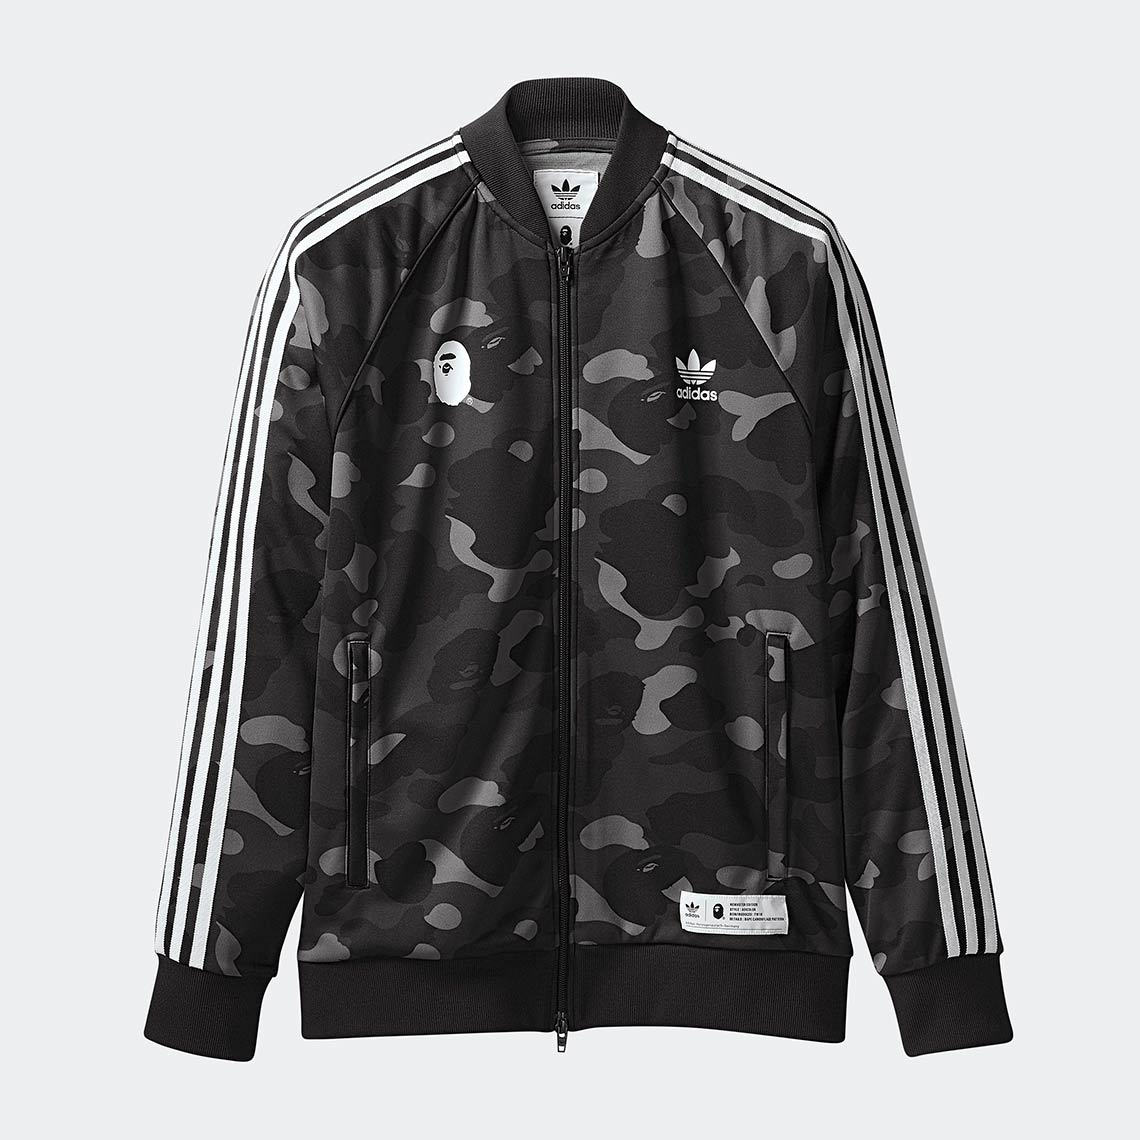 BAPE x adidas Originals Fall  18 Apparel Collection Release Date  July 28 cdd397a1f